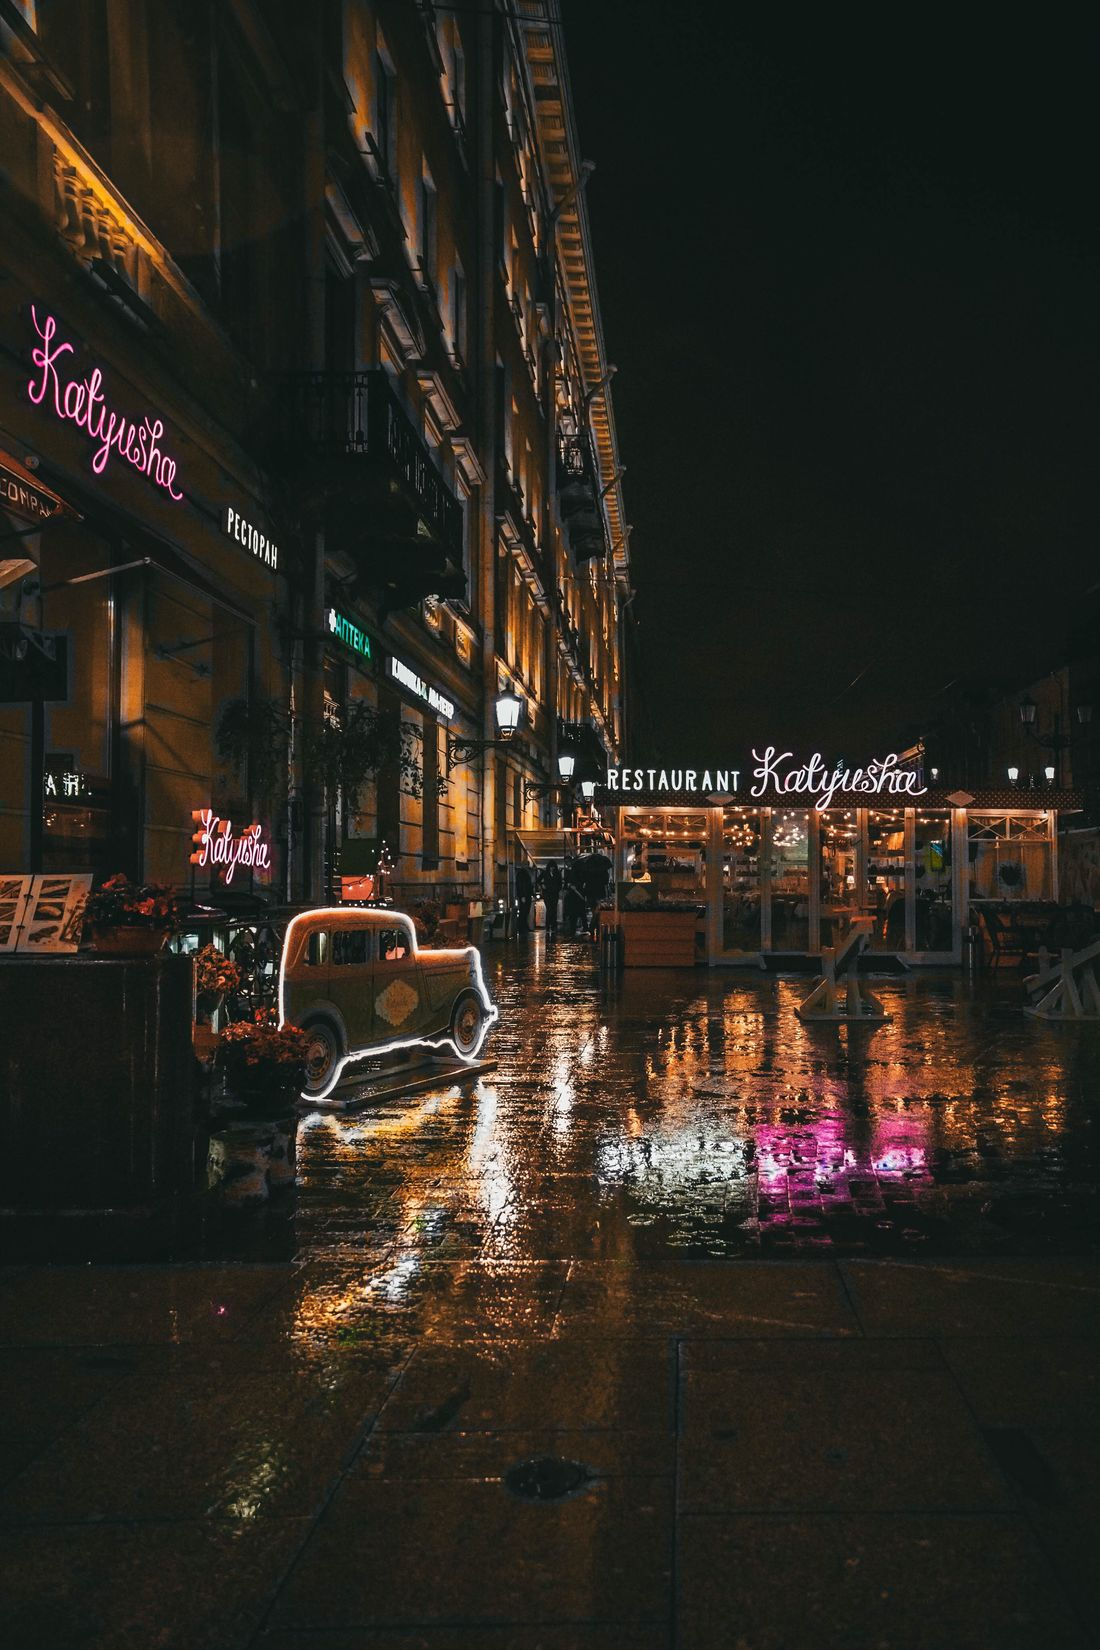 Night Building Exterior Architecture Built Structure Illuminated Street City Outdoors Transportation Water No People Sky